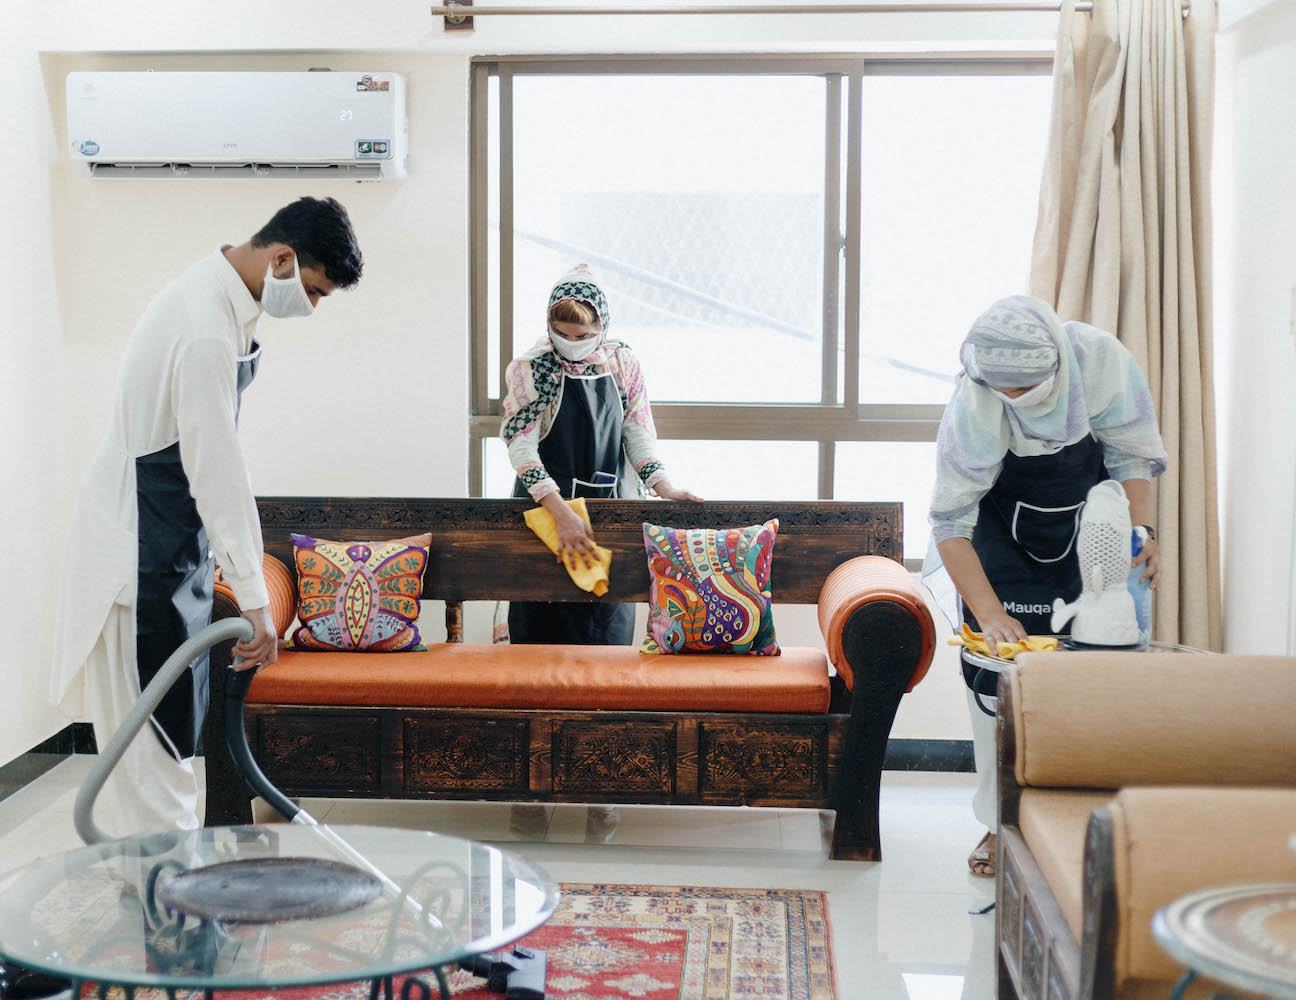 maids and cleaners for house cleaning in Islamabad, Rawalpindi and Lahore.